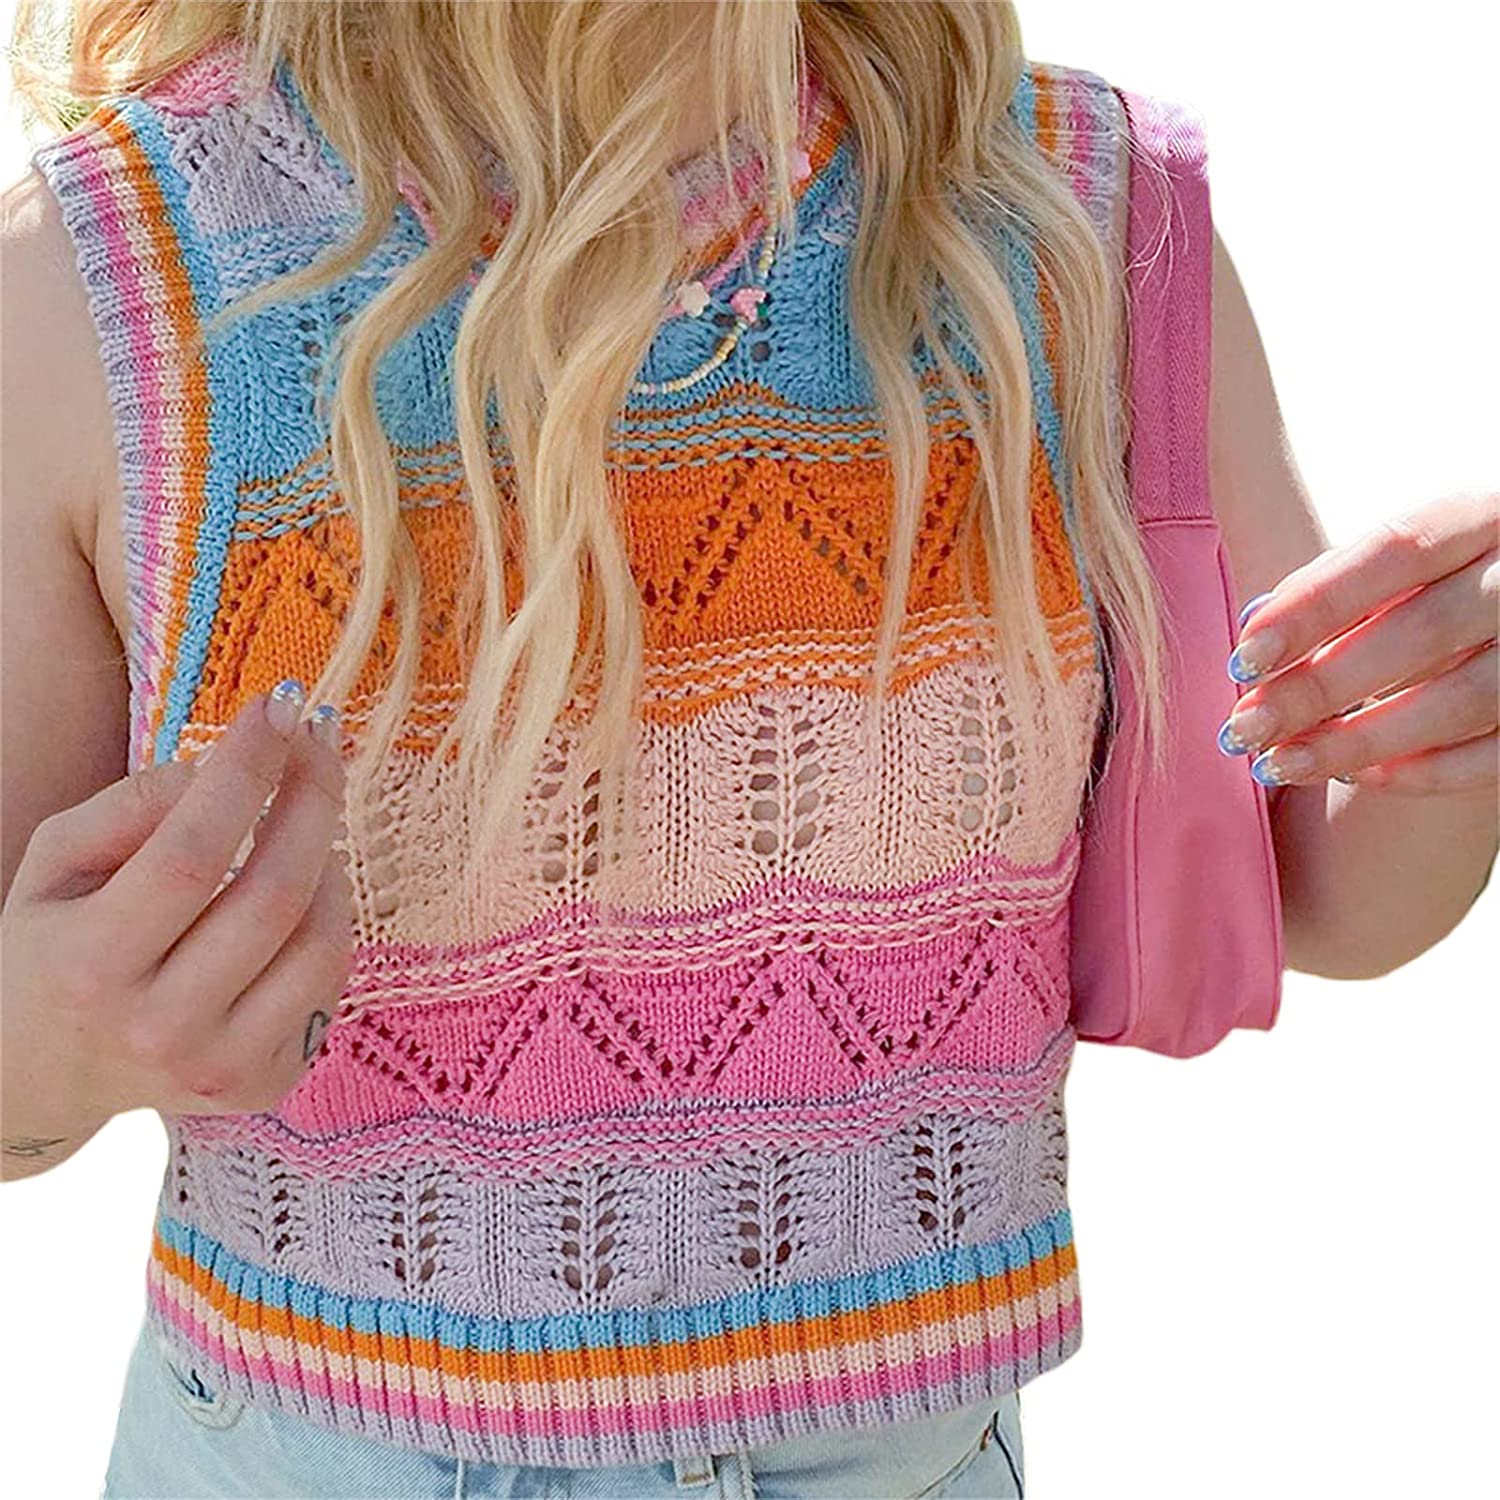 Womens Knitted Tank Top Y2k Cropped Striped Sweater Vest Slim Fitted Sleeveless Turtleneck Tops 90s E Girls